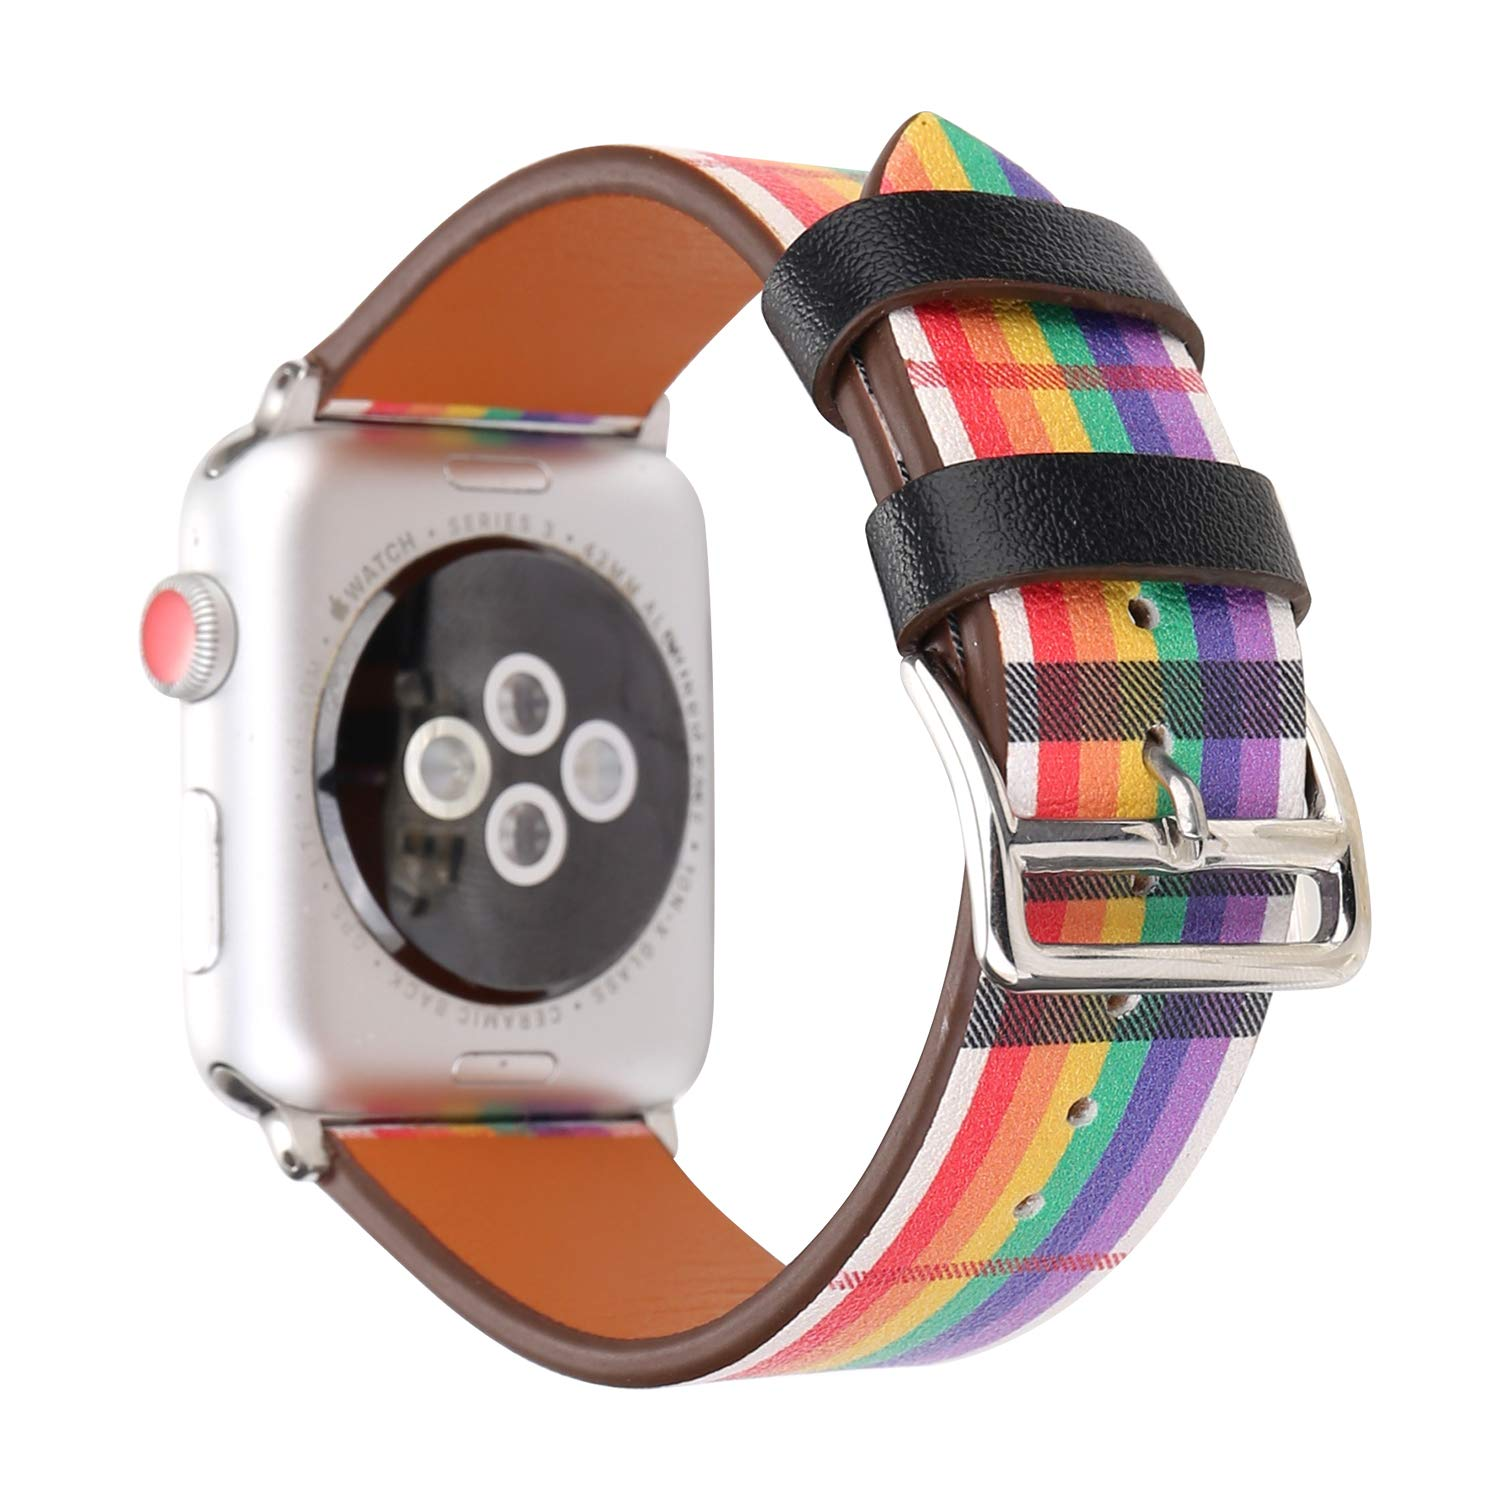 MeShow TCSHOW 42mm Colorful Tartan Plaid Style Replacement Strap Wrist Band Watch Band with Metal Adapter Compatible for Apple Watch Series 3 2 1(Not fit for 38mm Apple Watch) (O)